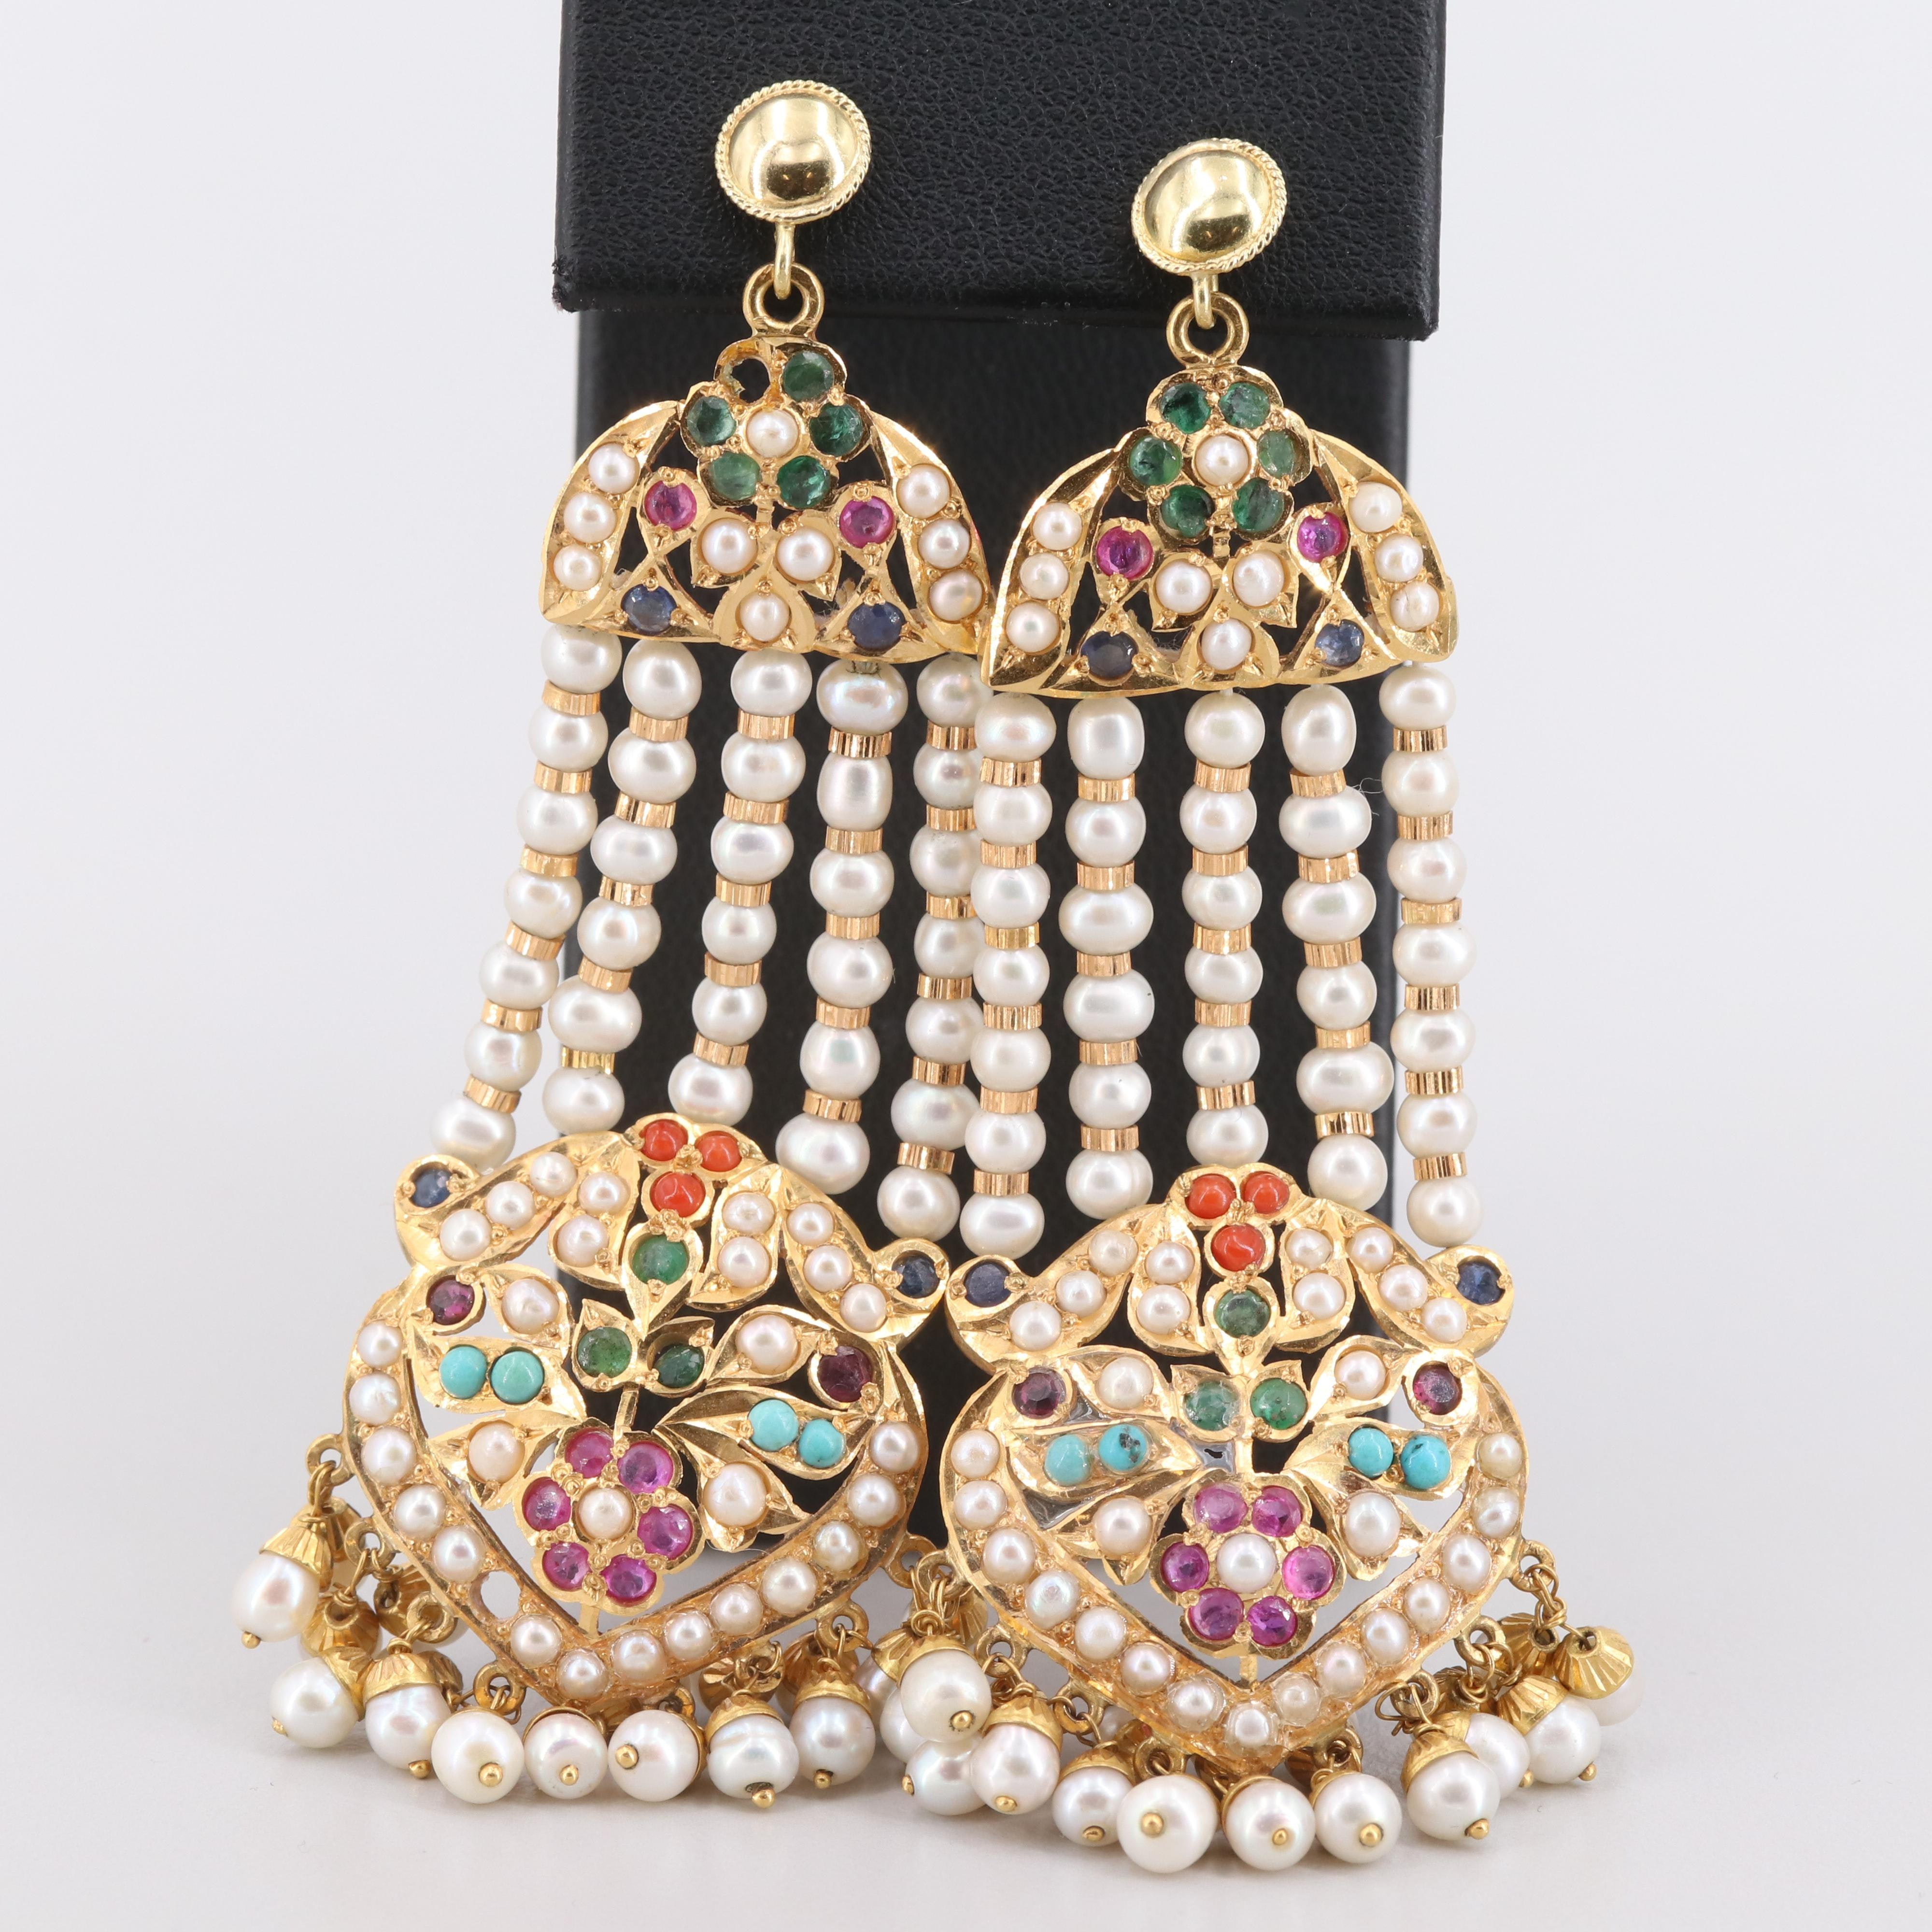 18K Yellow Gold Ruby, Sapphire, Emerald and Gemstone Chandelier Earrings